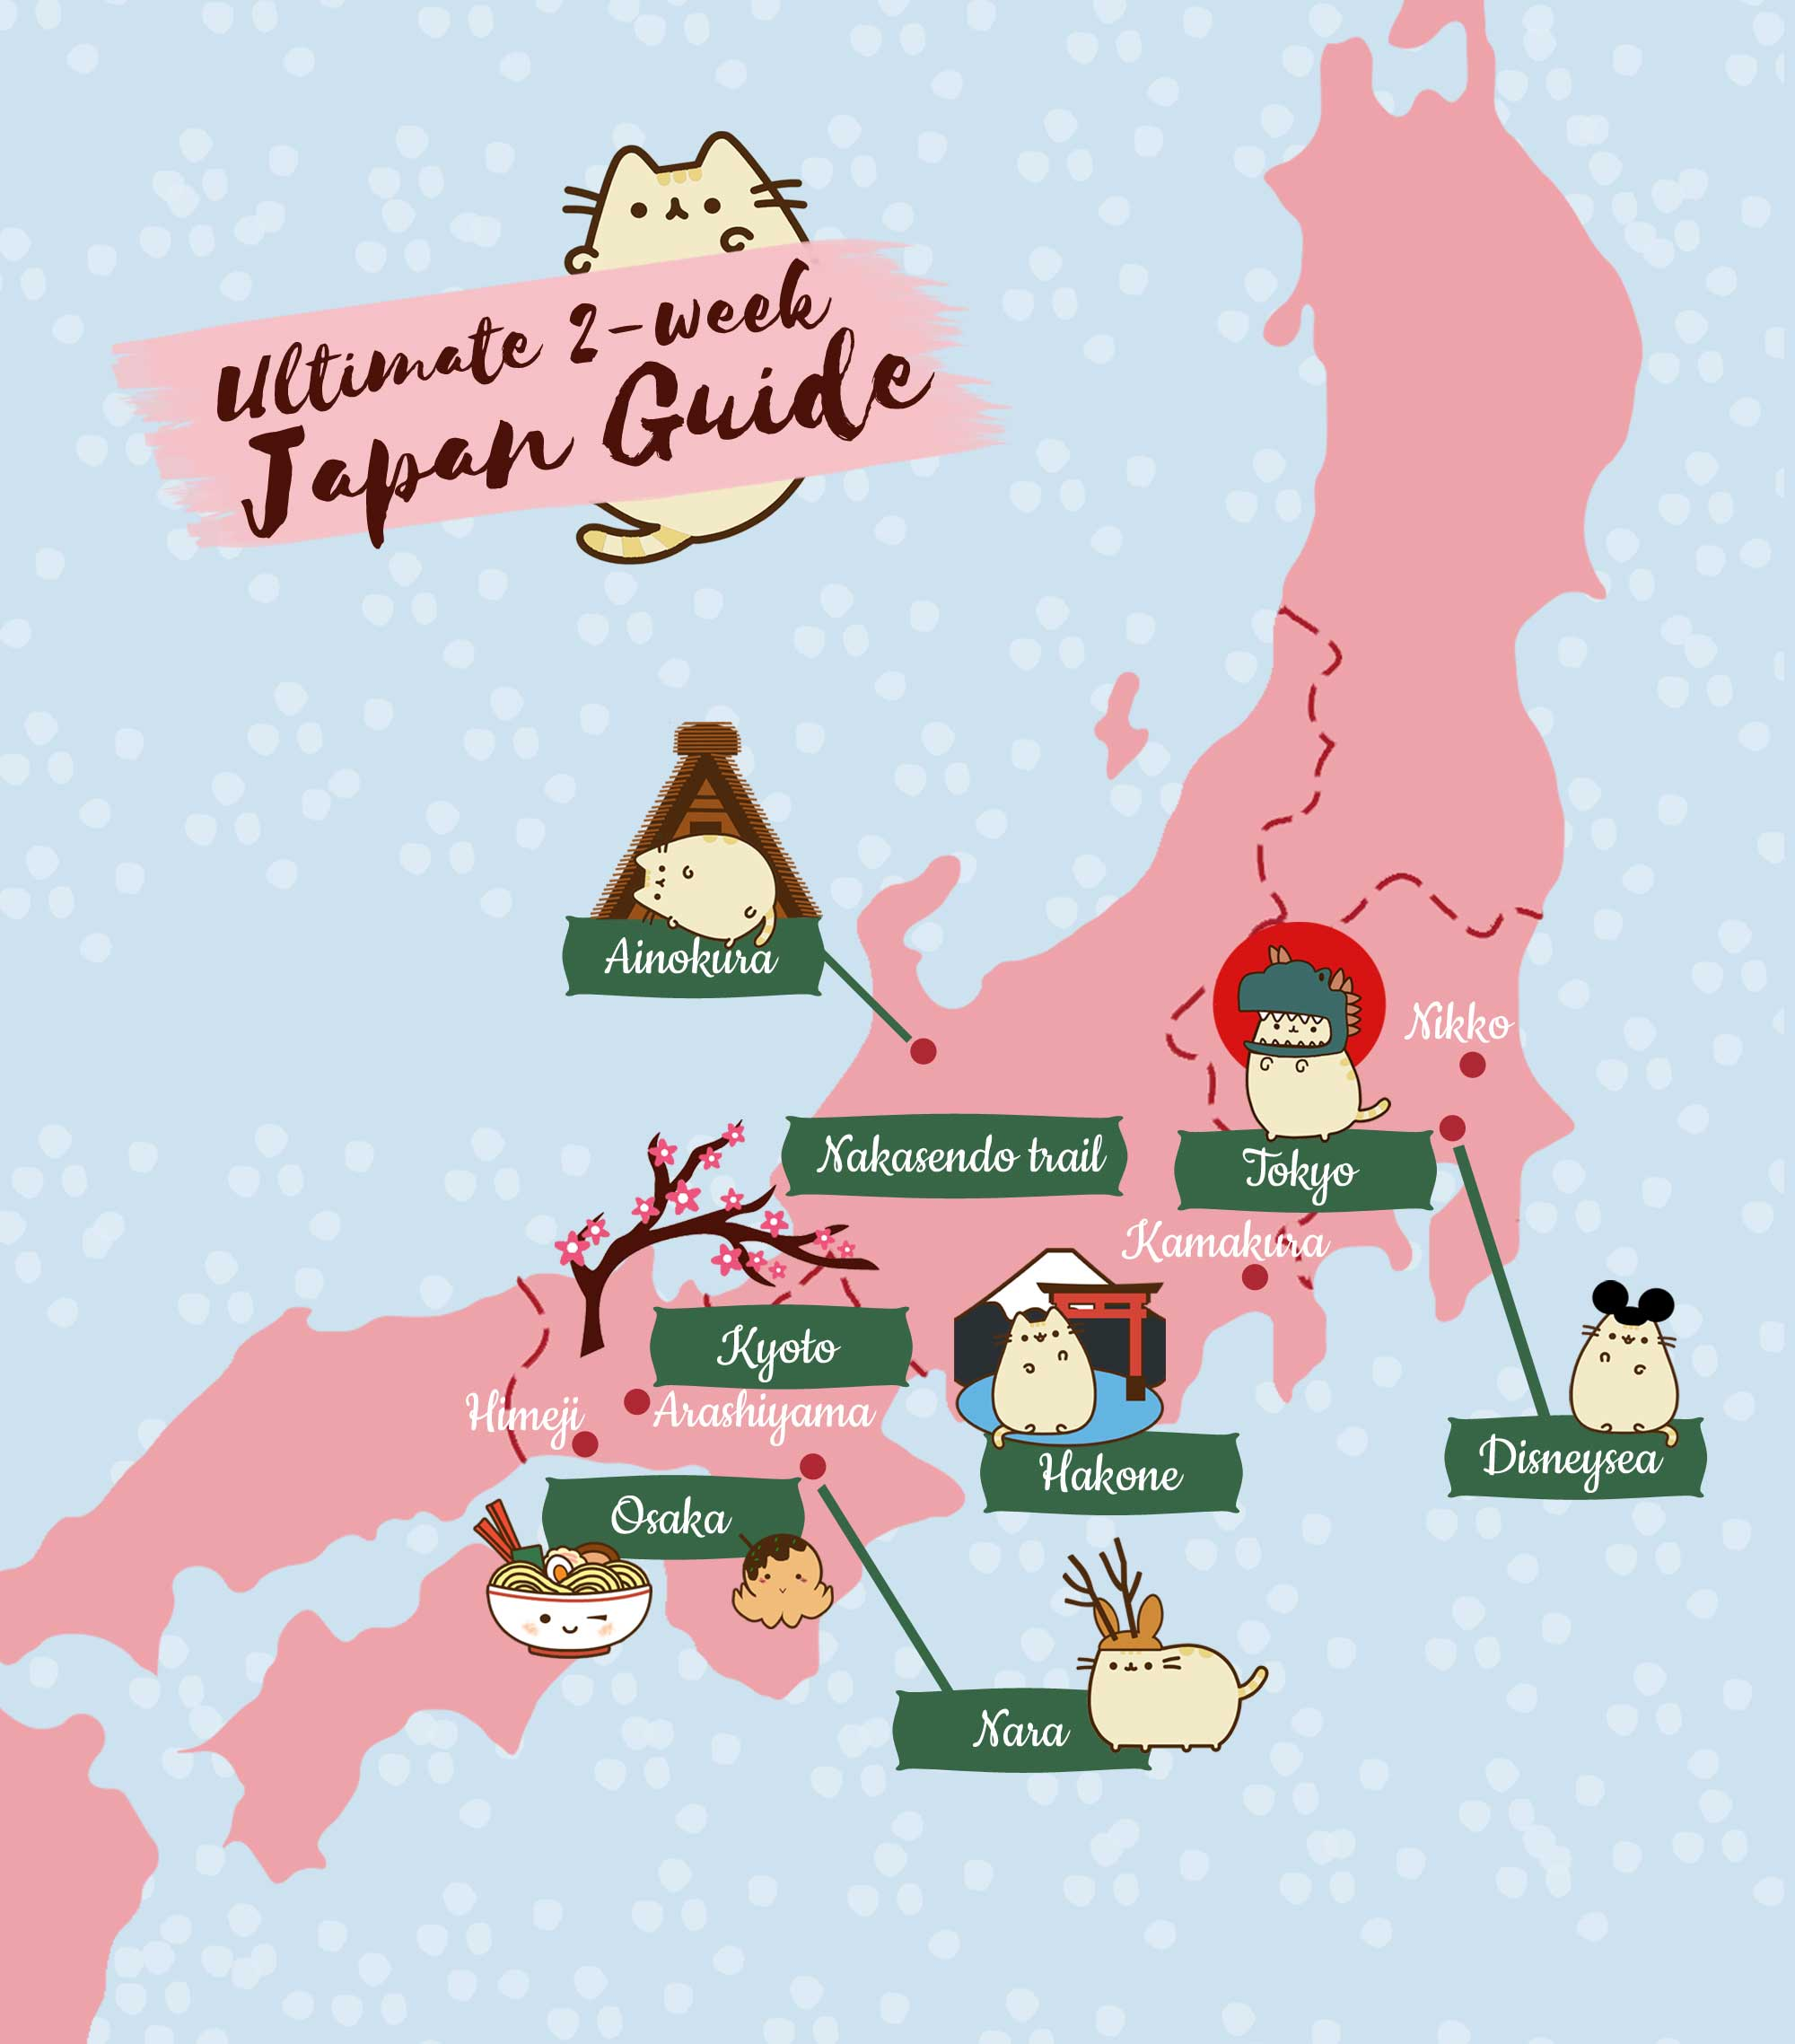 Ultimate) Japan Guide: What to visit, eat and shop in 2.